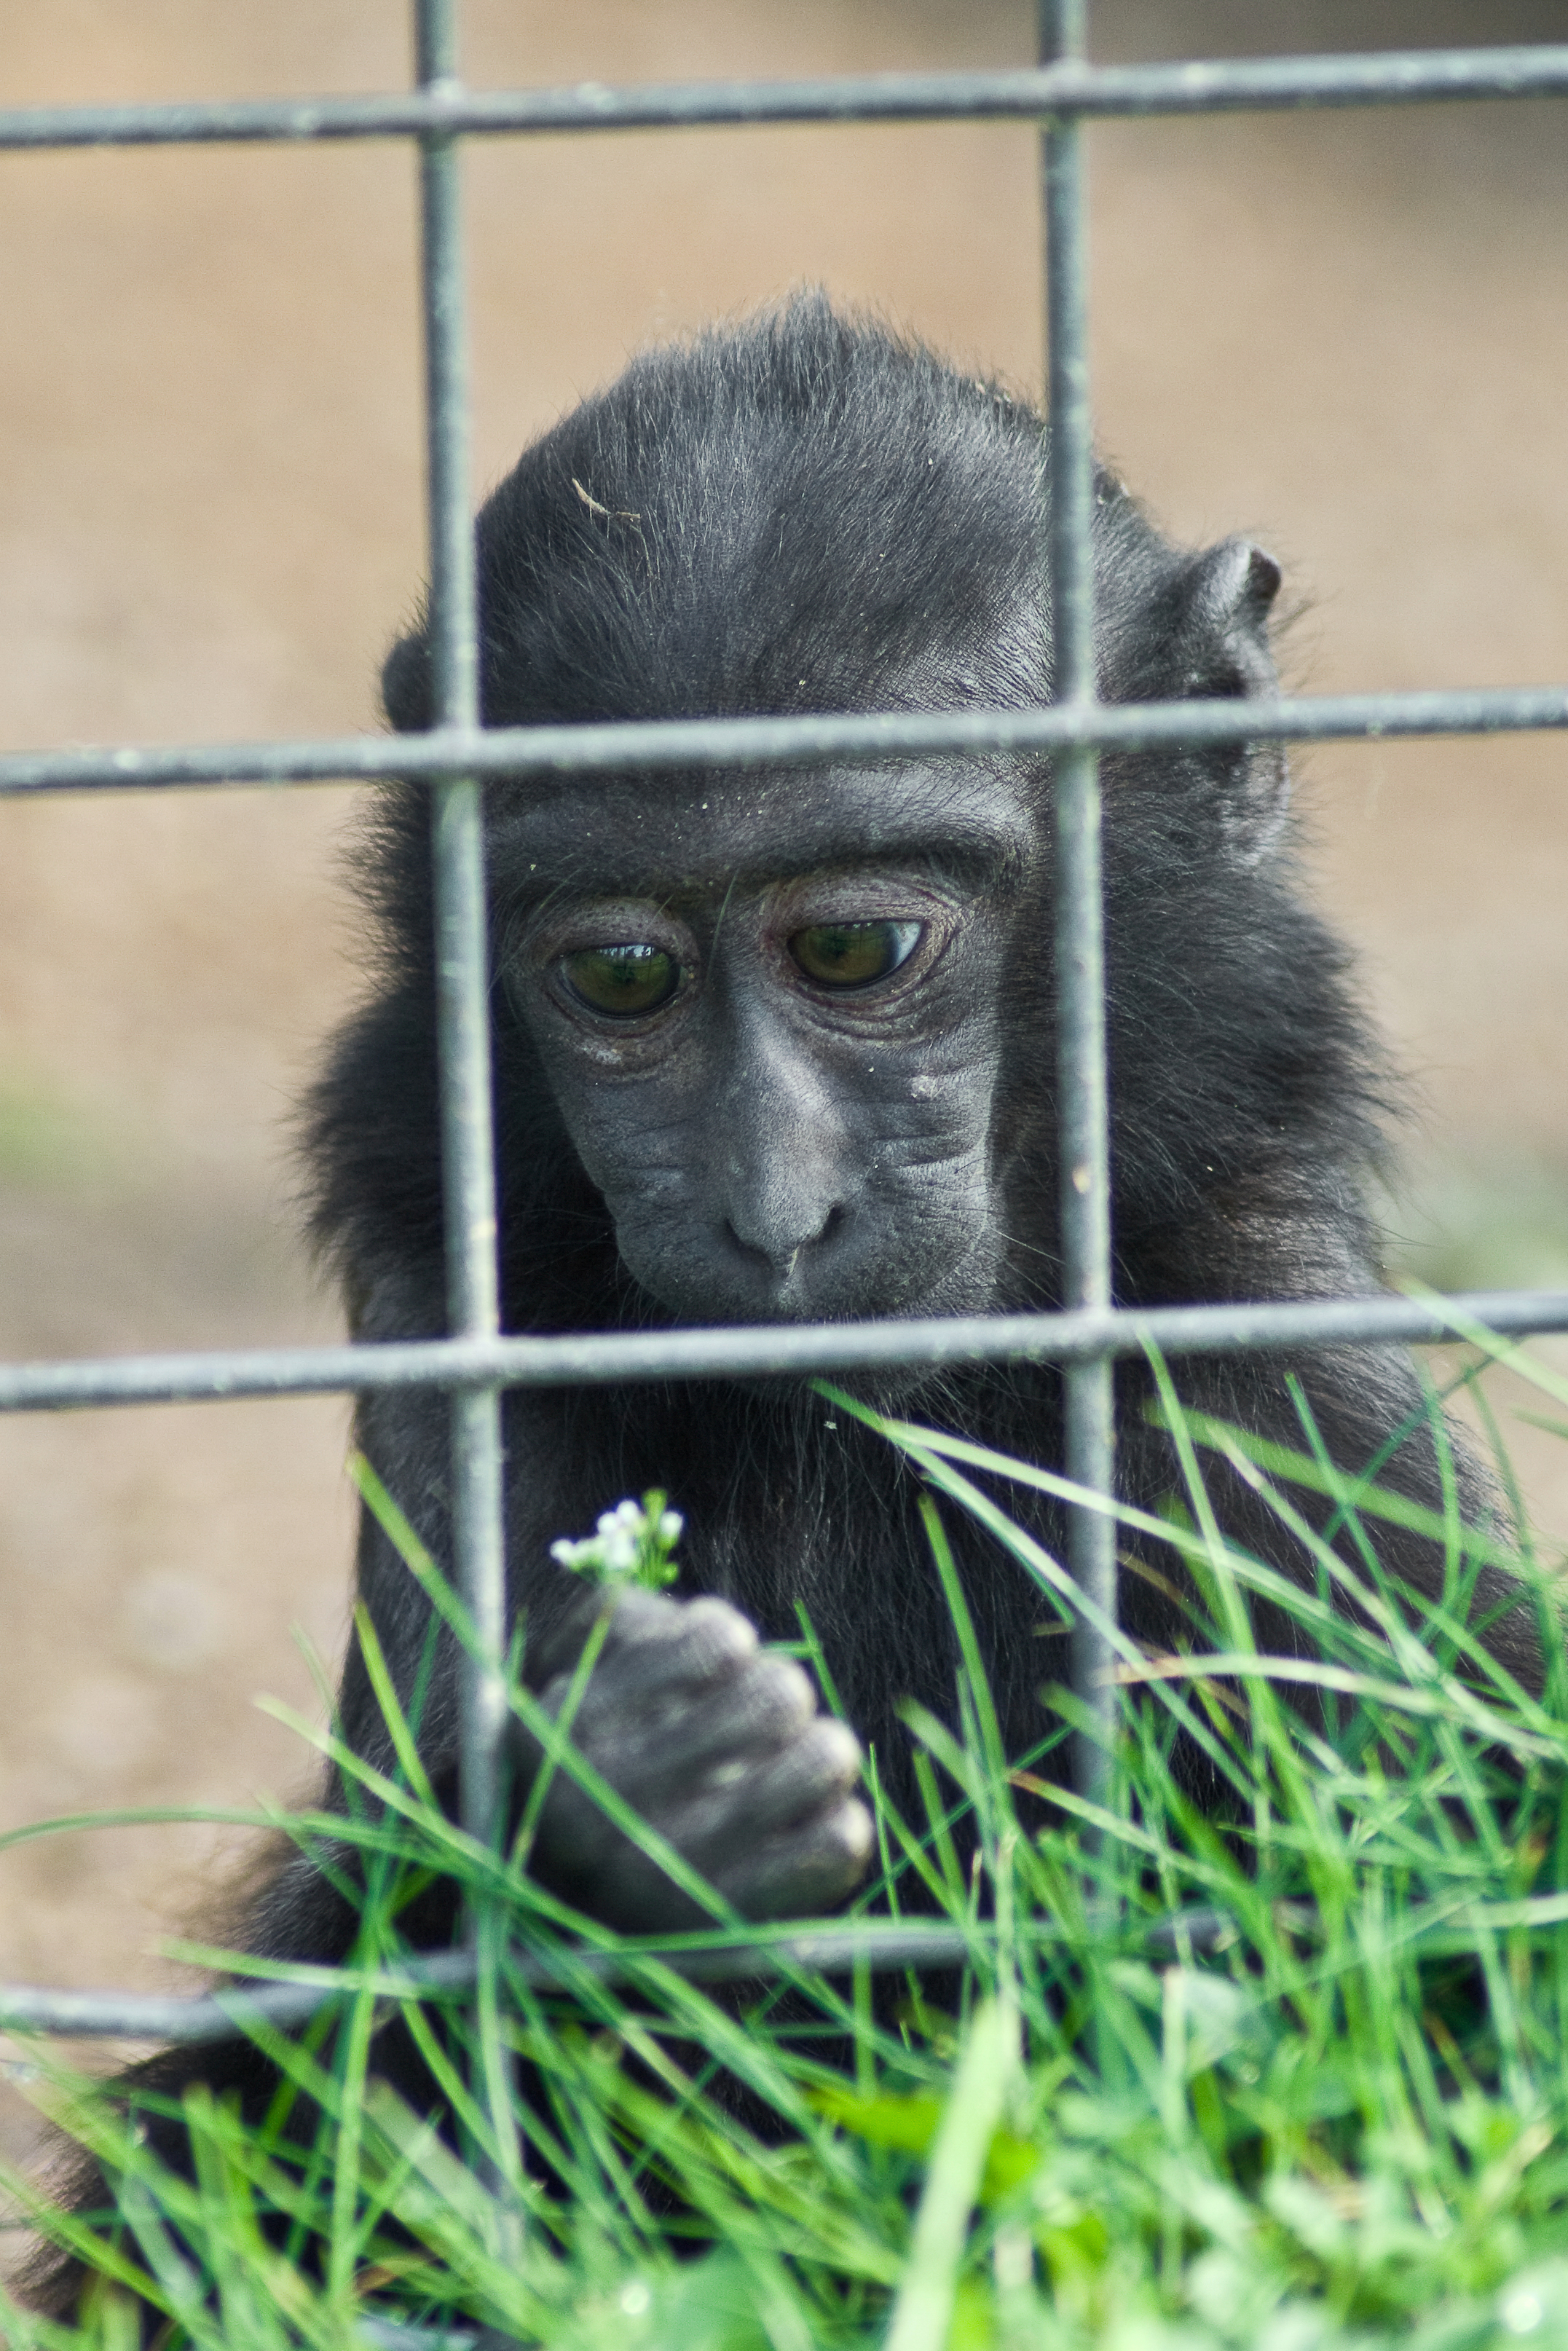 Caged Ape